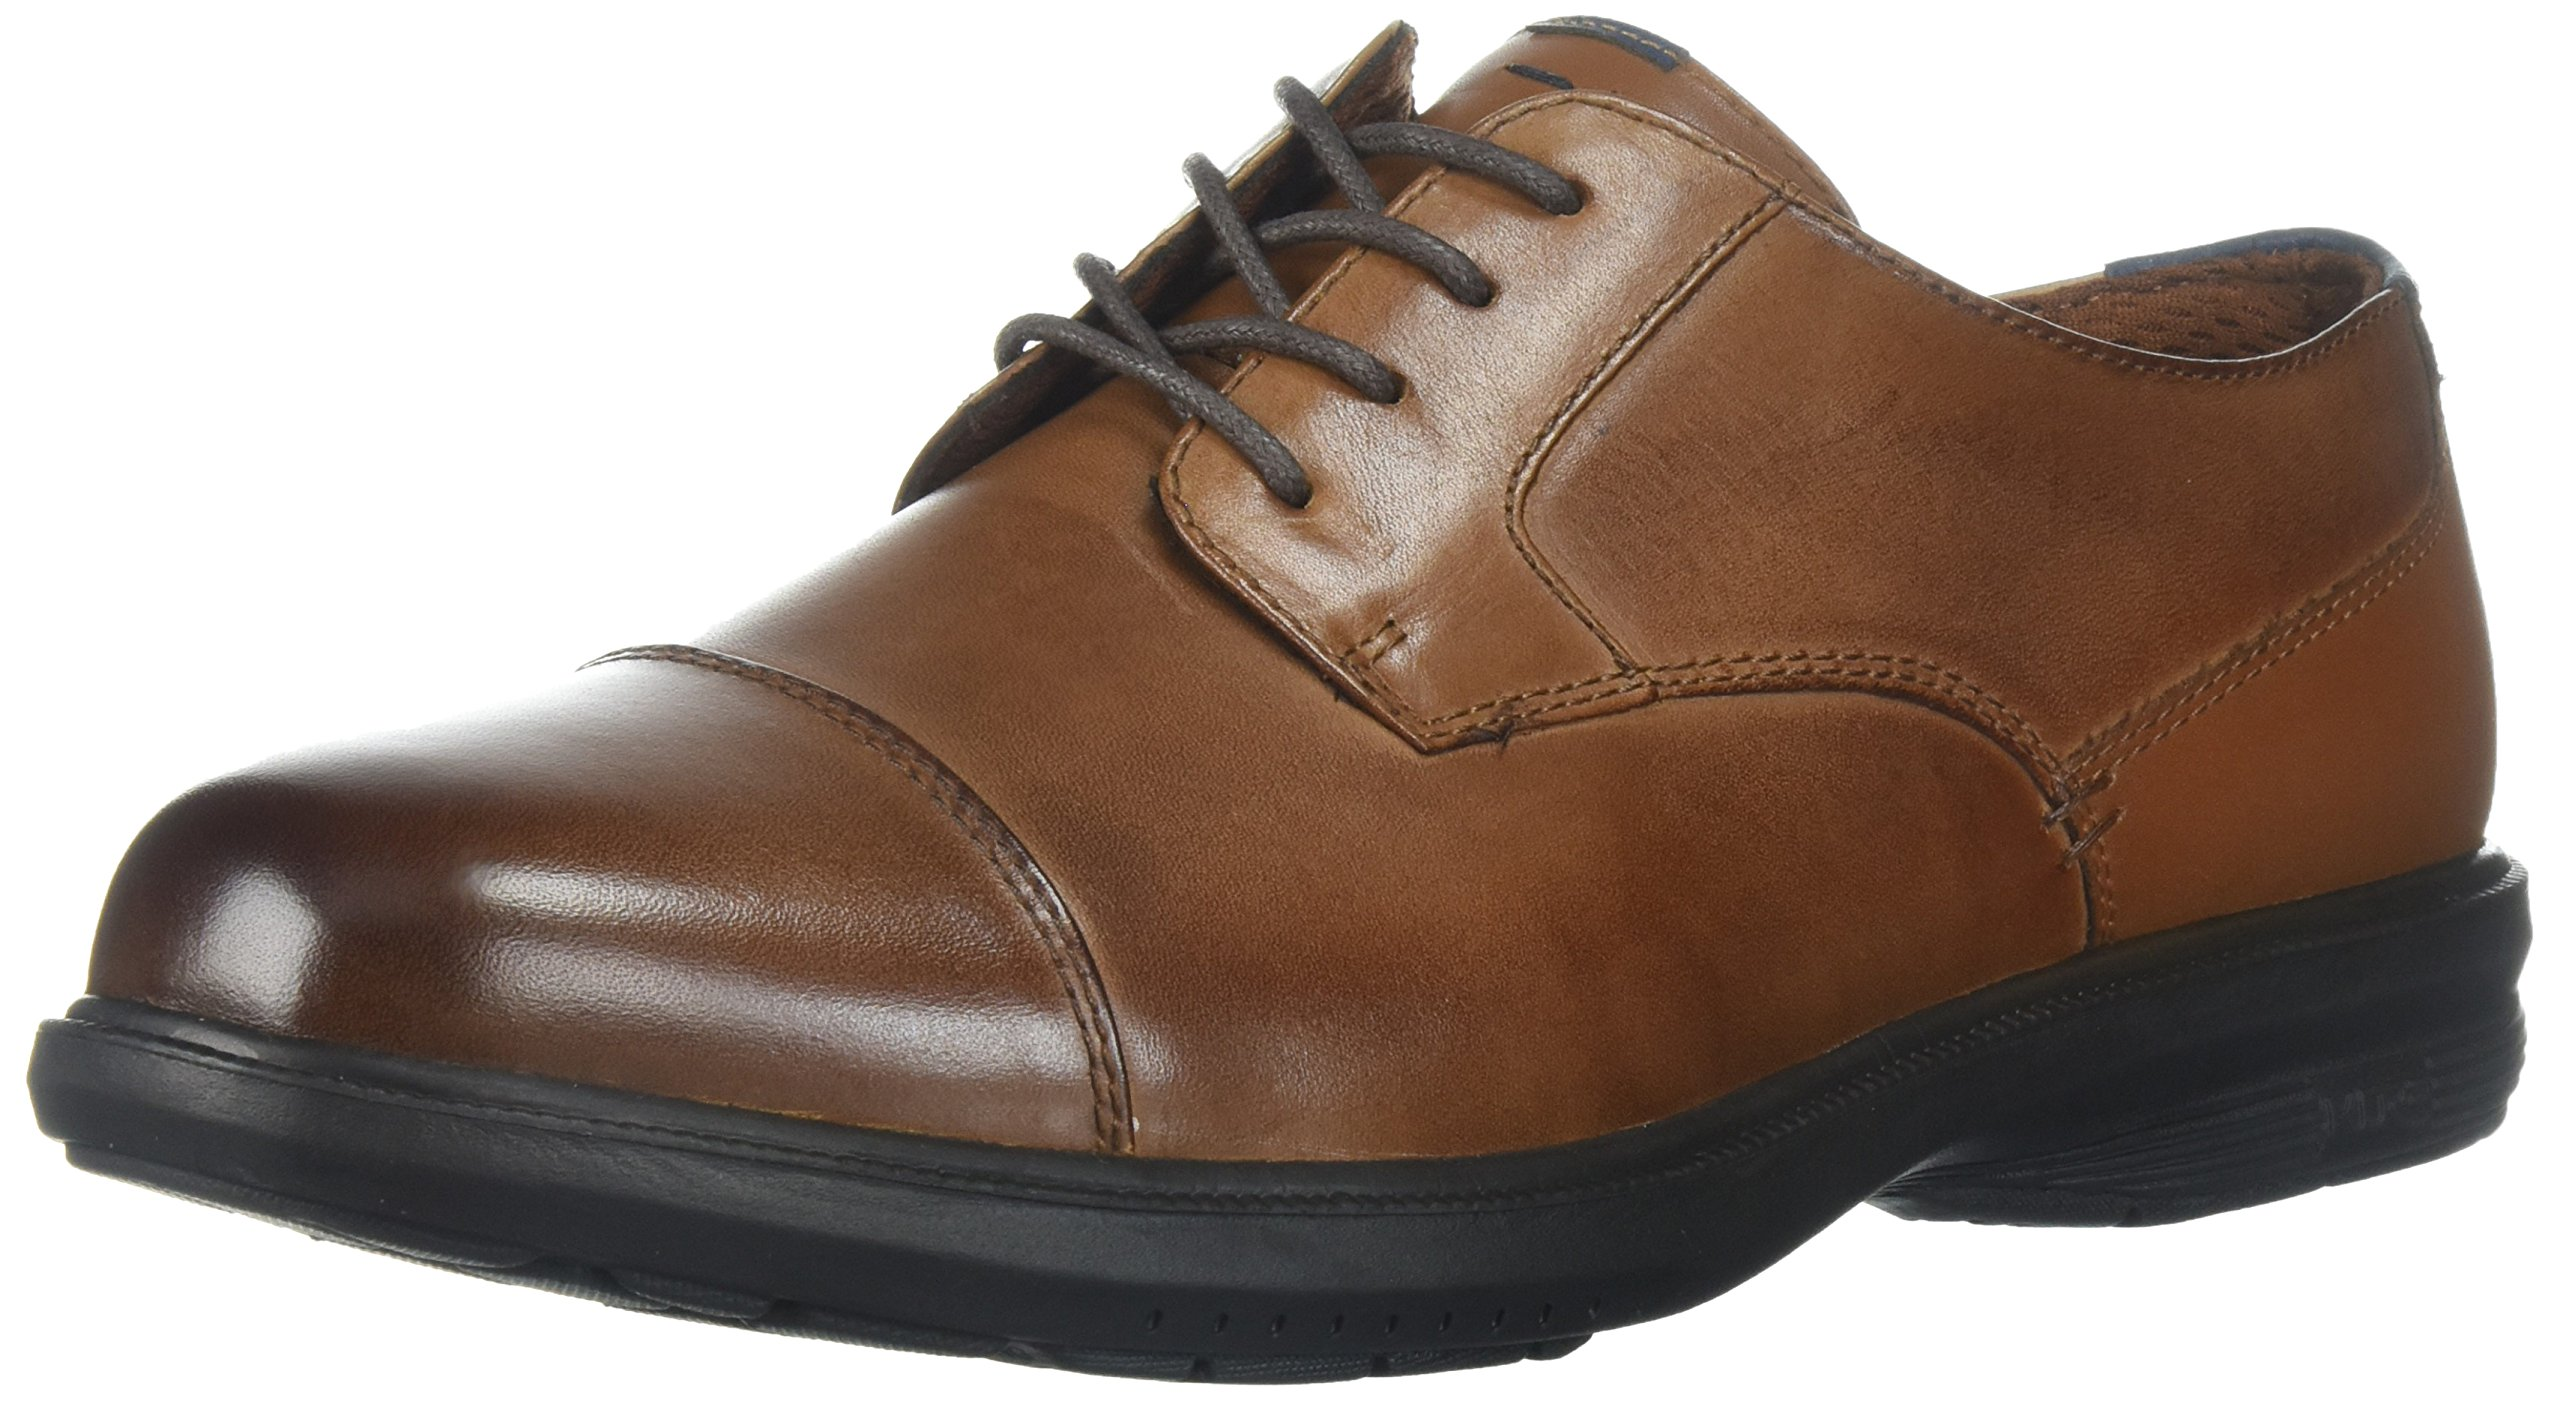 Nunn Bush Men's Maretto Cap Toe Oxford, Tan, 11 W US